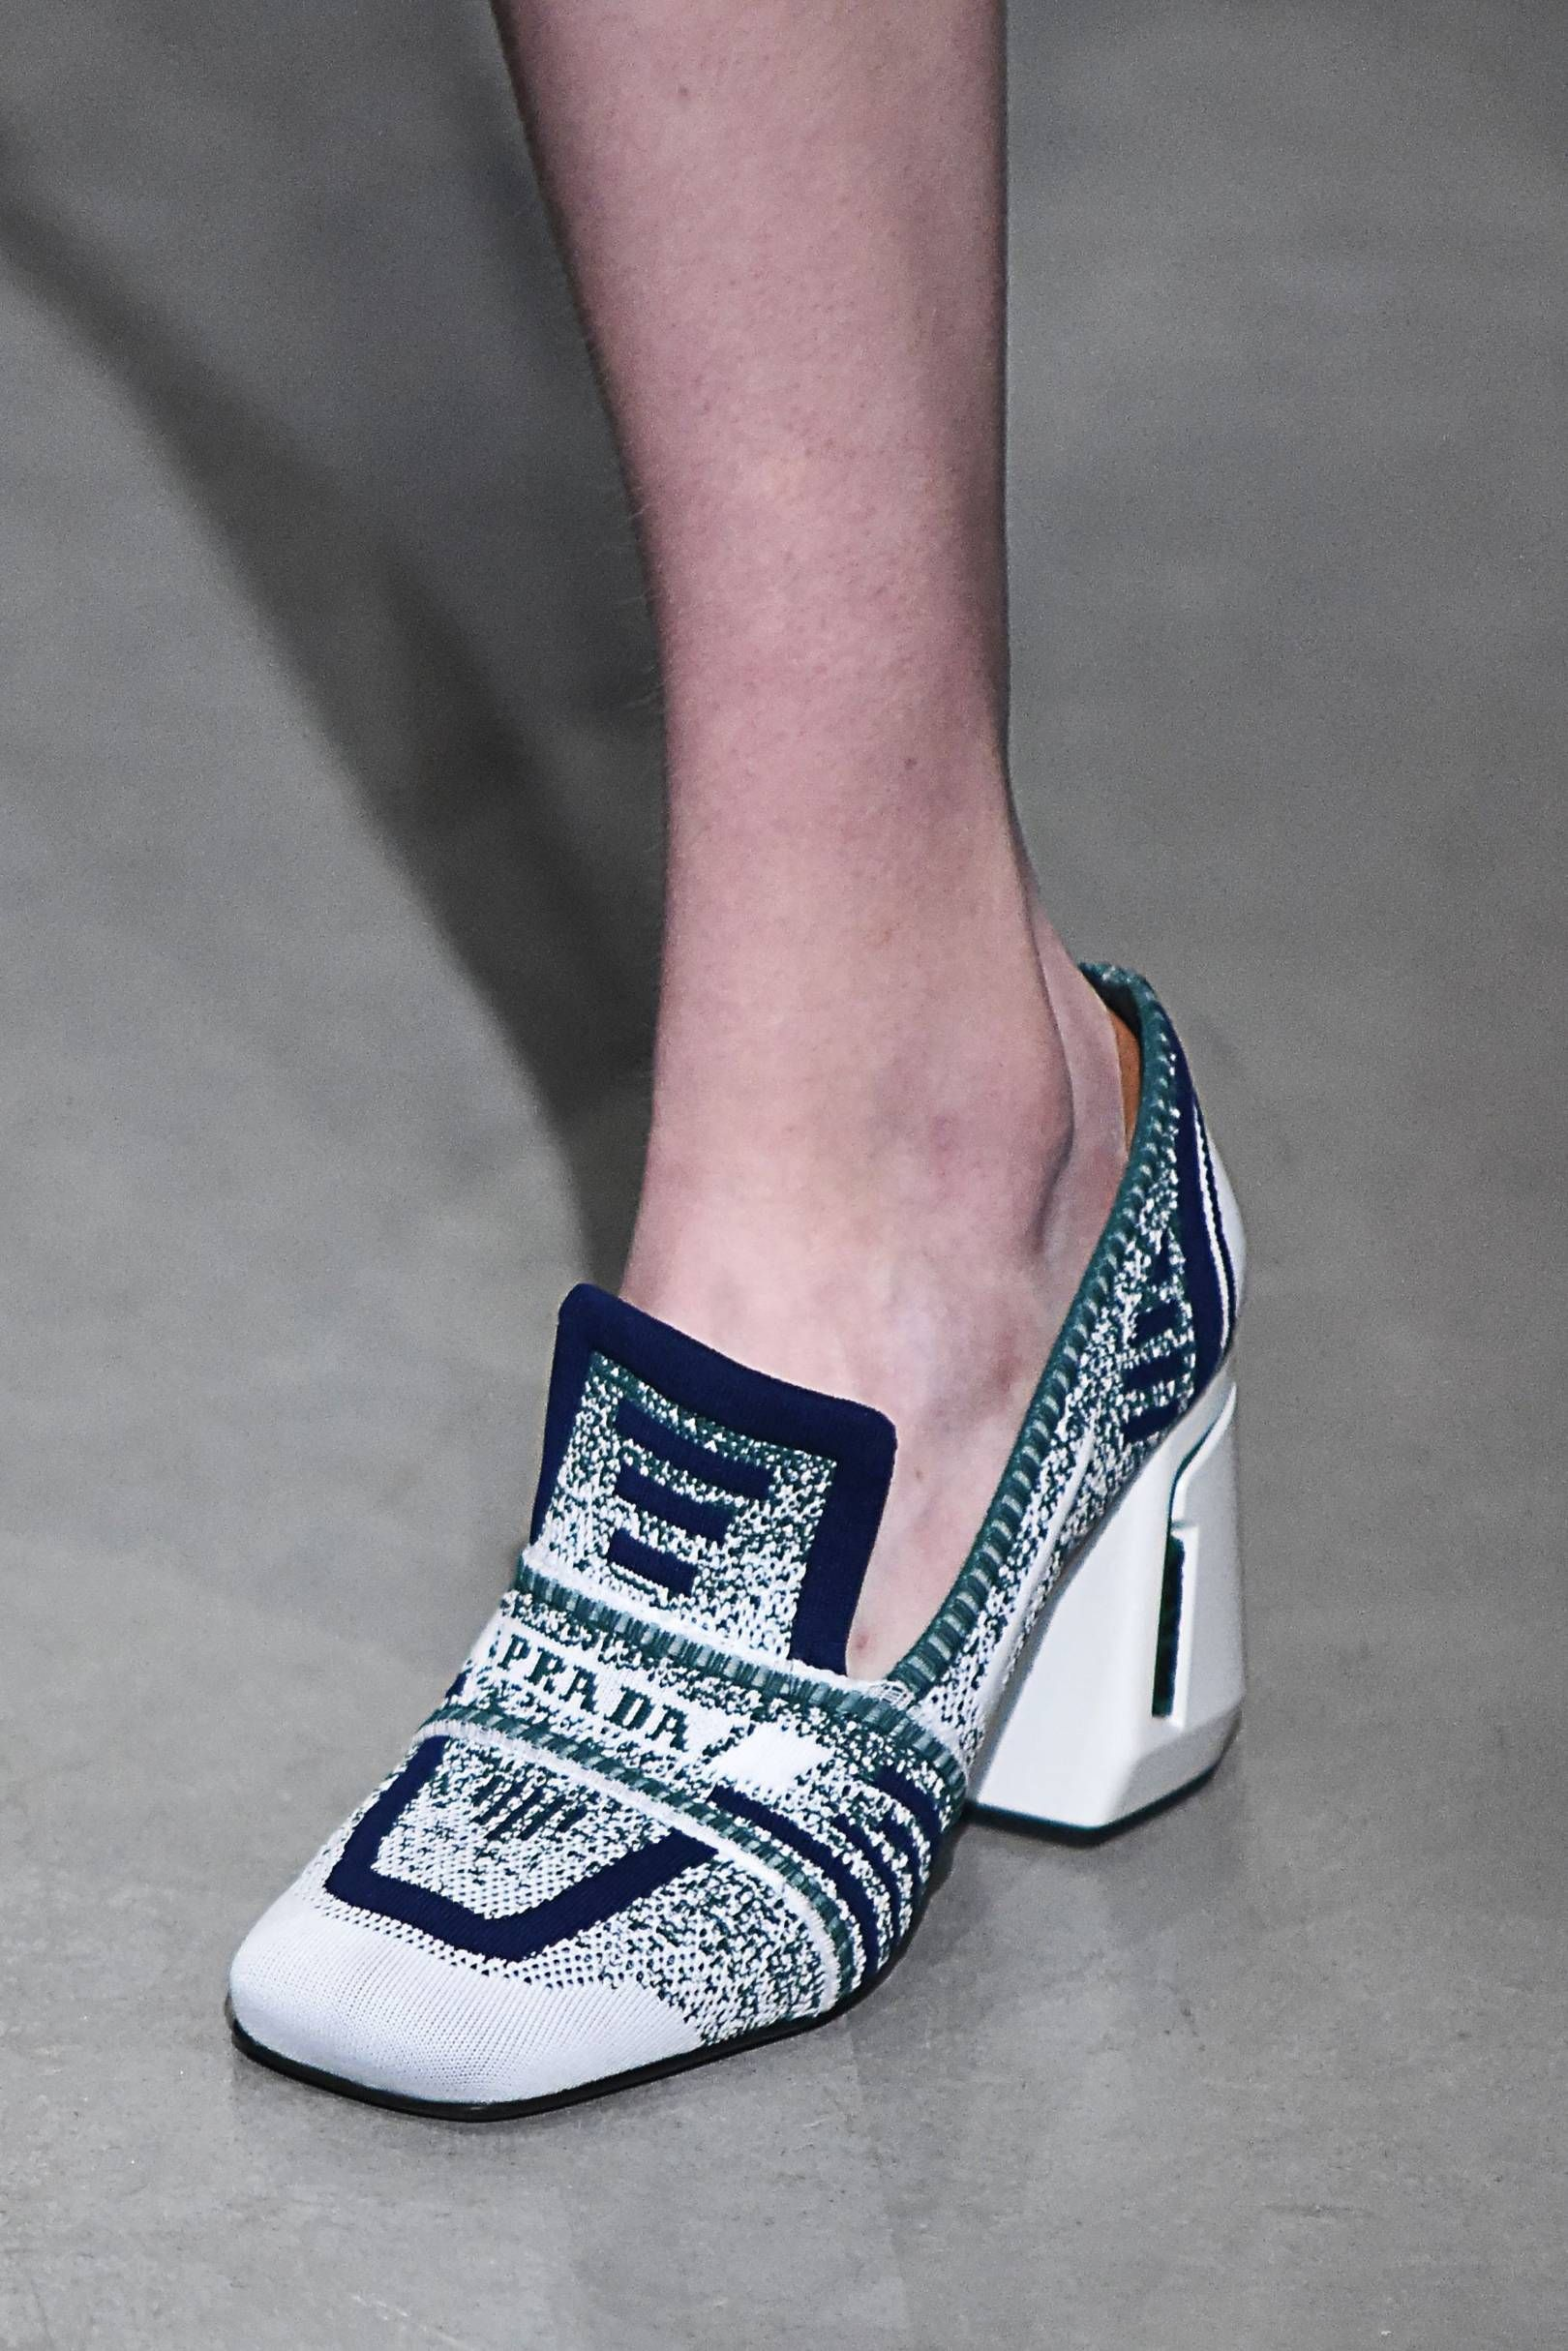 765dd879b93 Miuccia Prada s weakness for stacked-heeled Seventies loafers shows no  signs of abating  having debuted the style in the Nineties